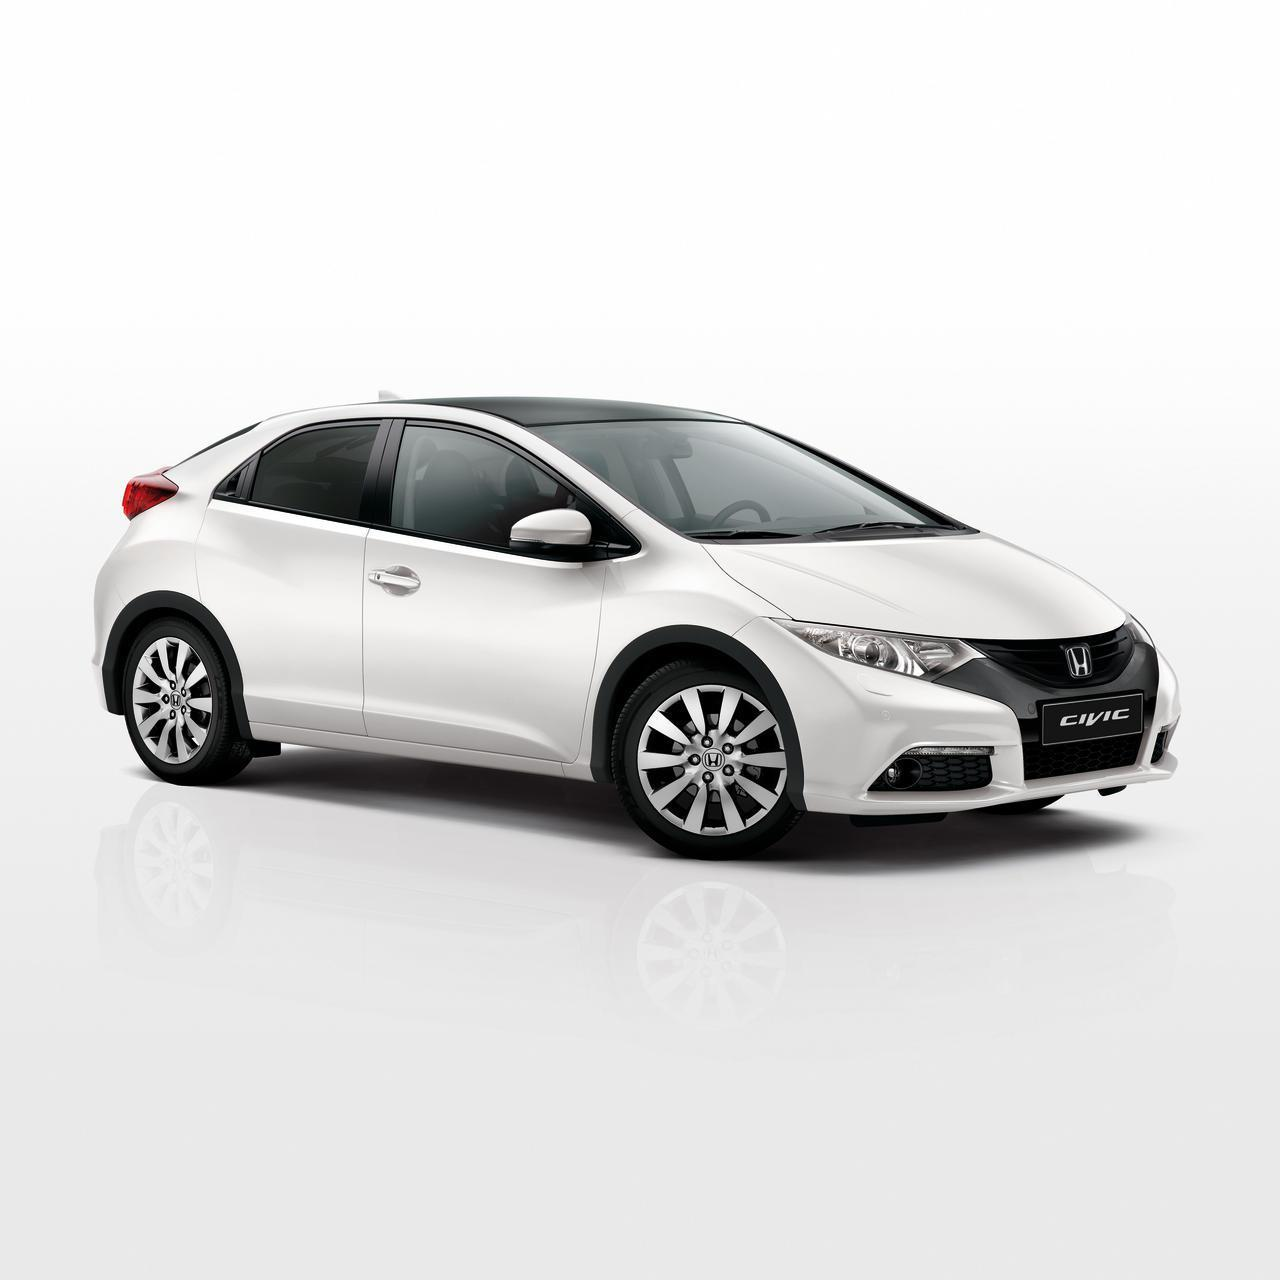 Foto de Honda Civic 2012 (45/153)